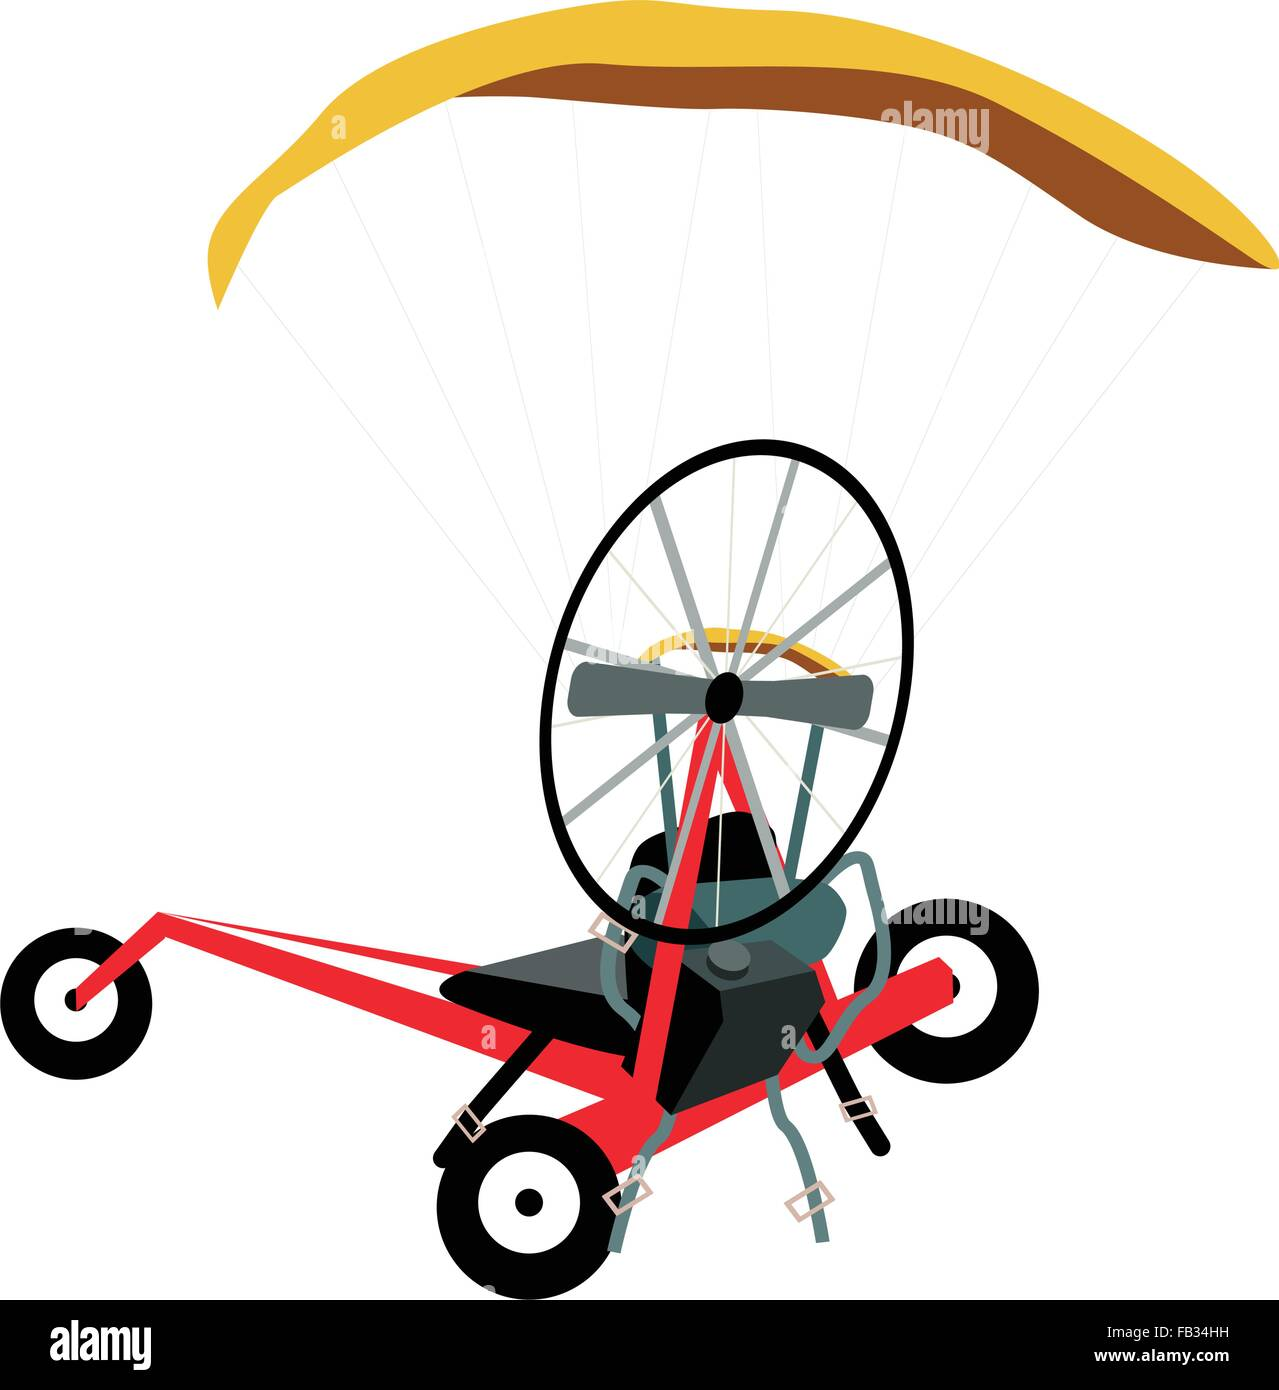 Illustration of Powered Paraglider or Electric Paramotor